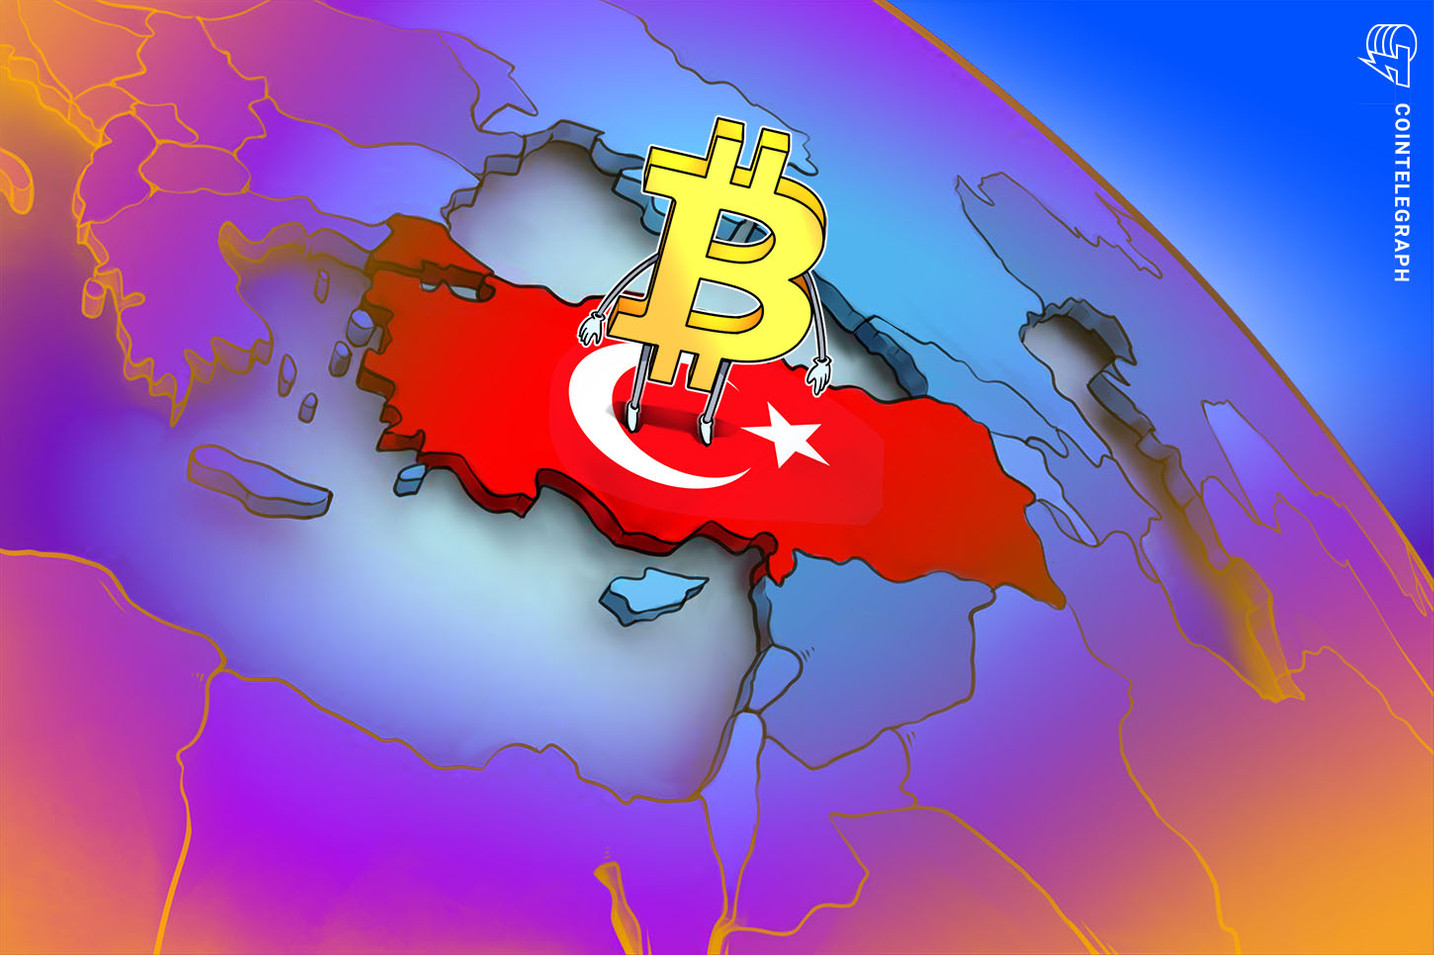 Bitcoin searches in Turkey spike 566% after Turkish lira drops 14%